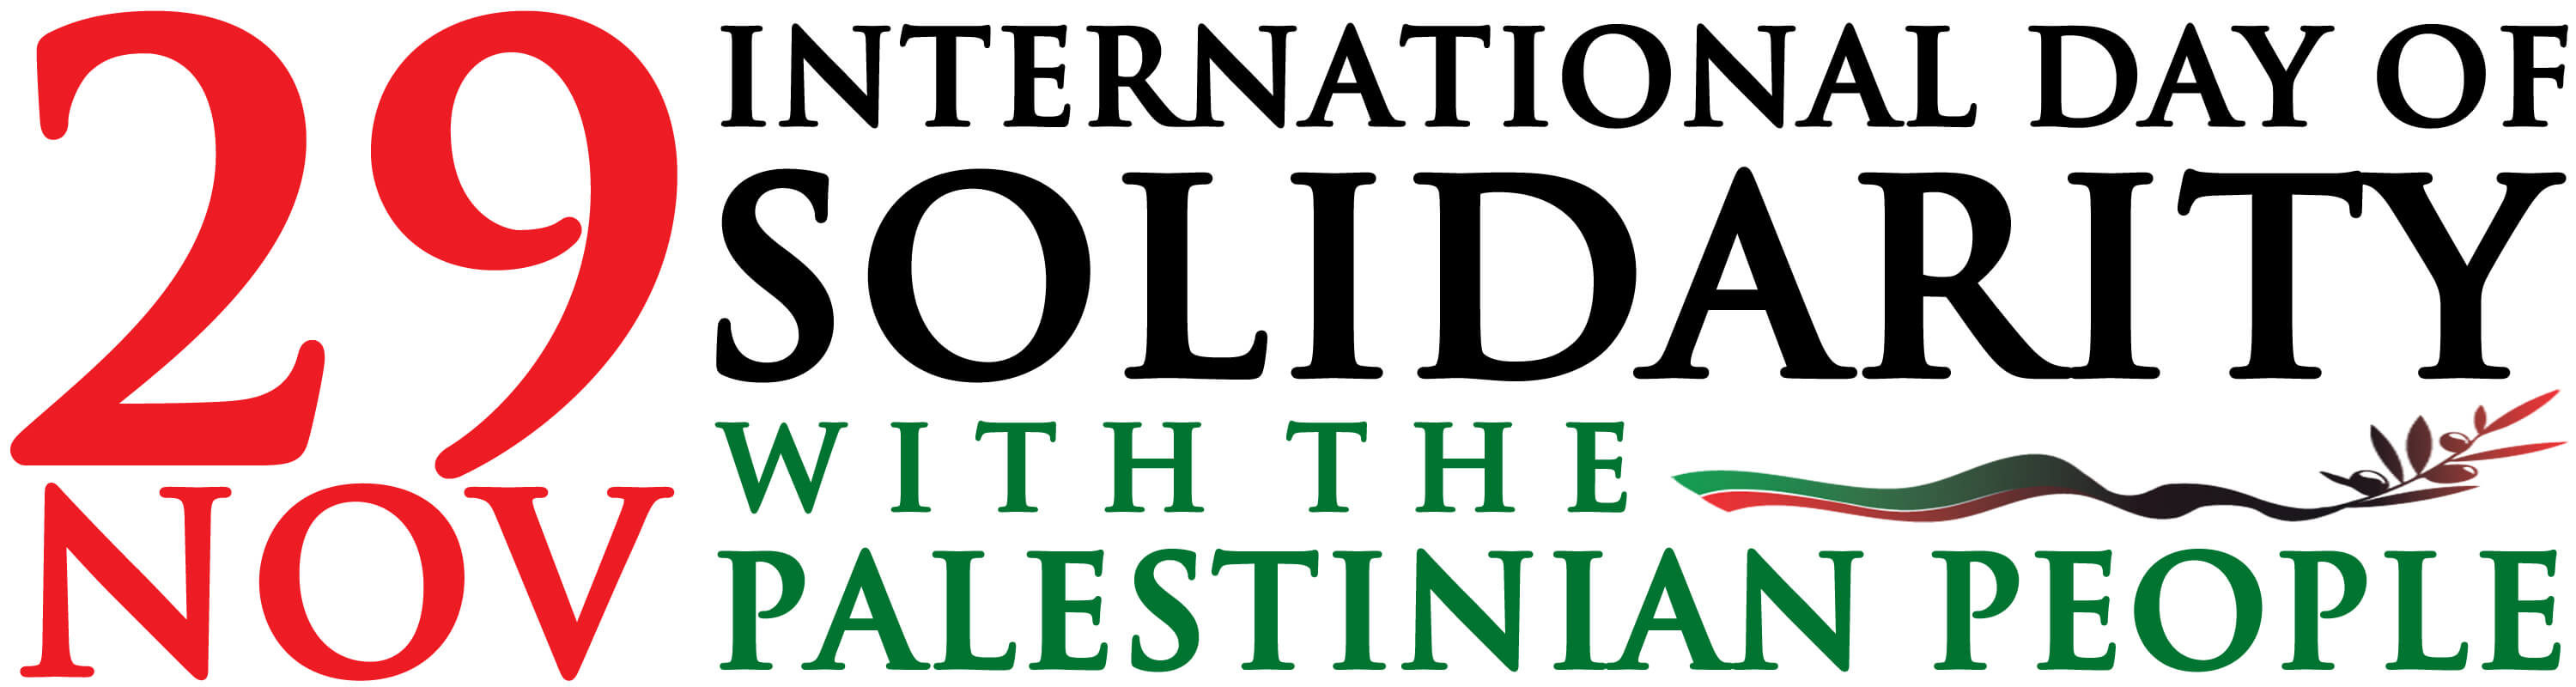 International Day of Solidarity with the Palestinian People